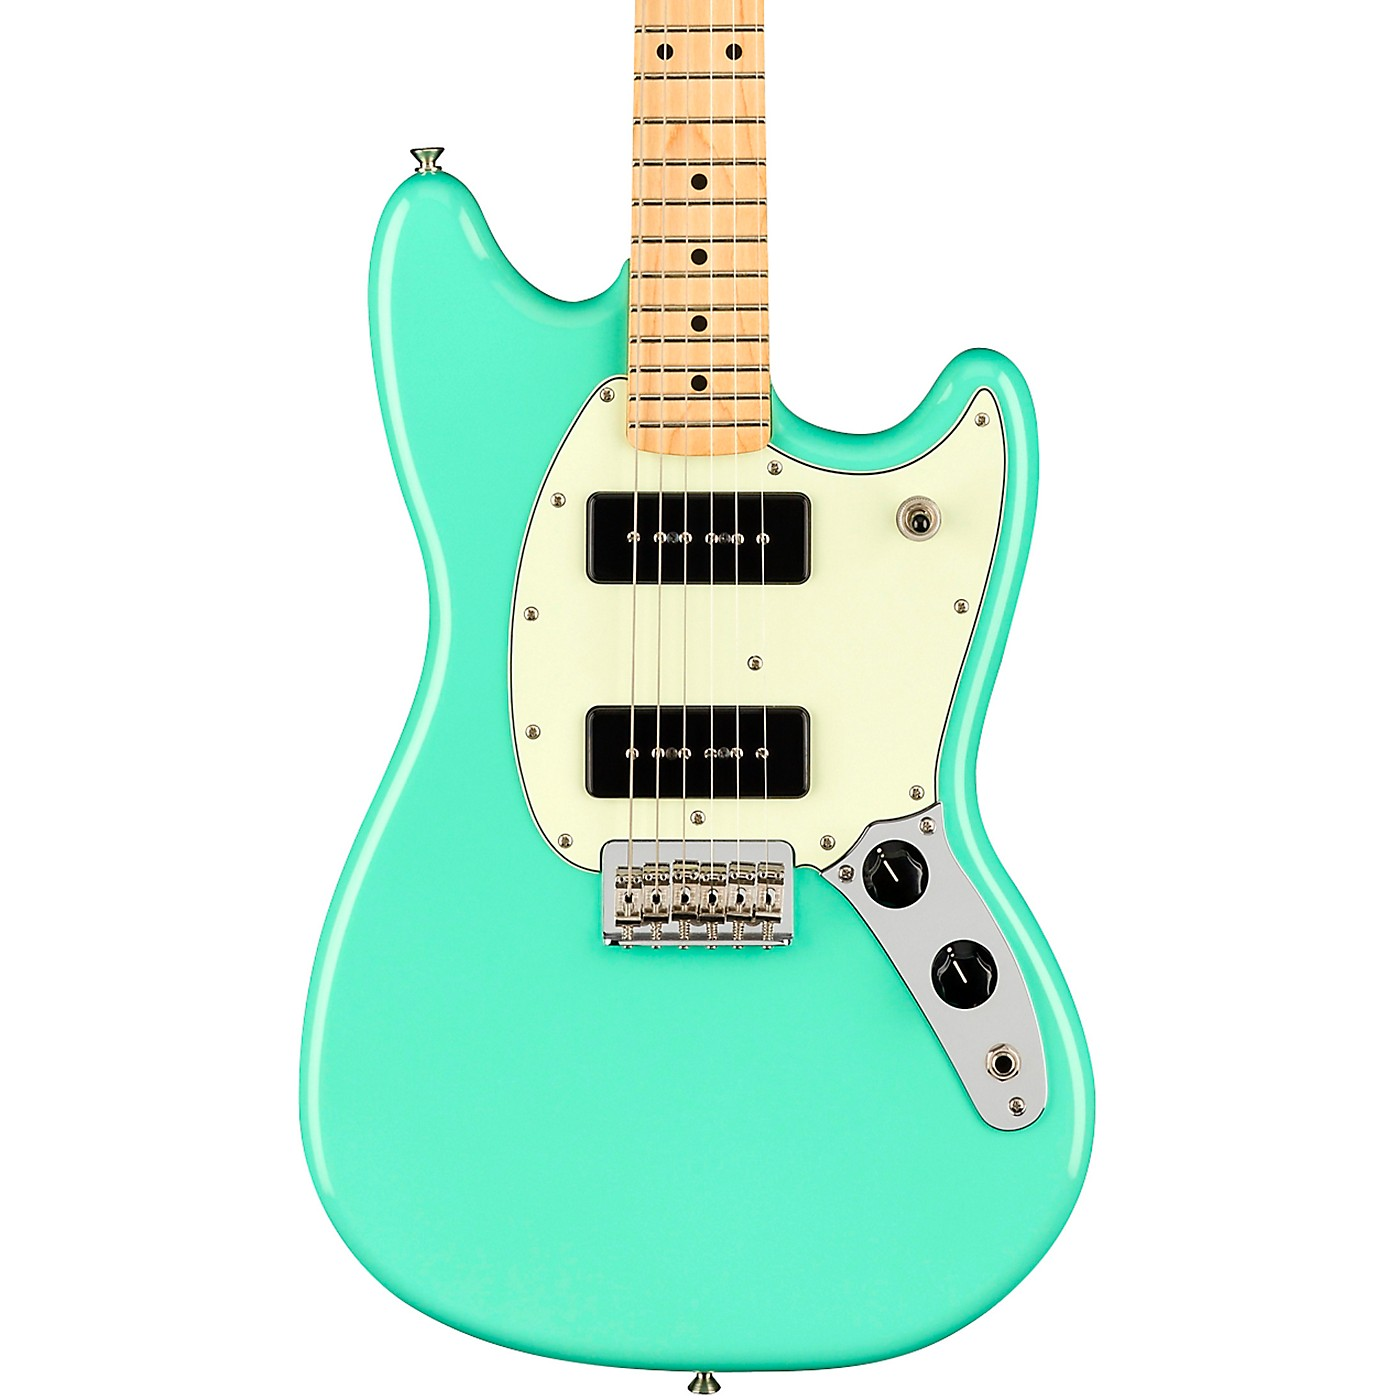 Fender Player Mustang 90 Maple Fingerboard Electric Guitar thumbnail